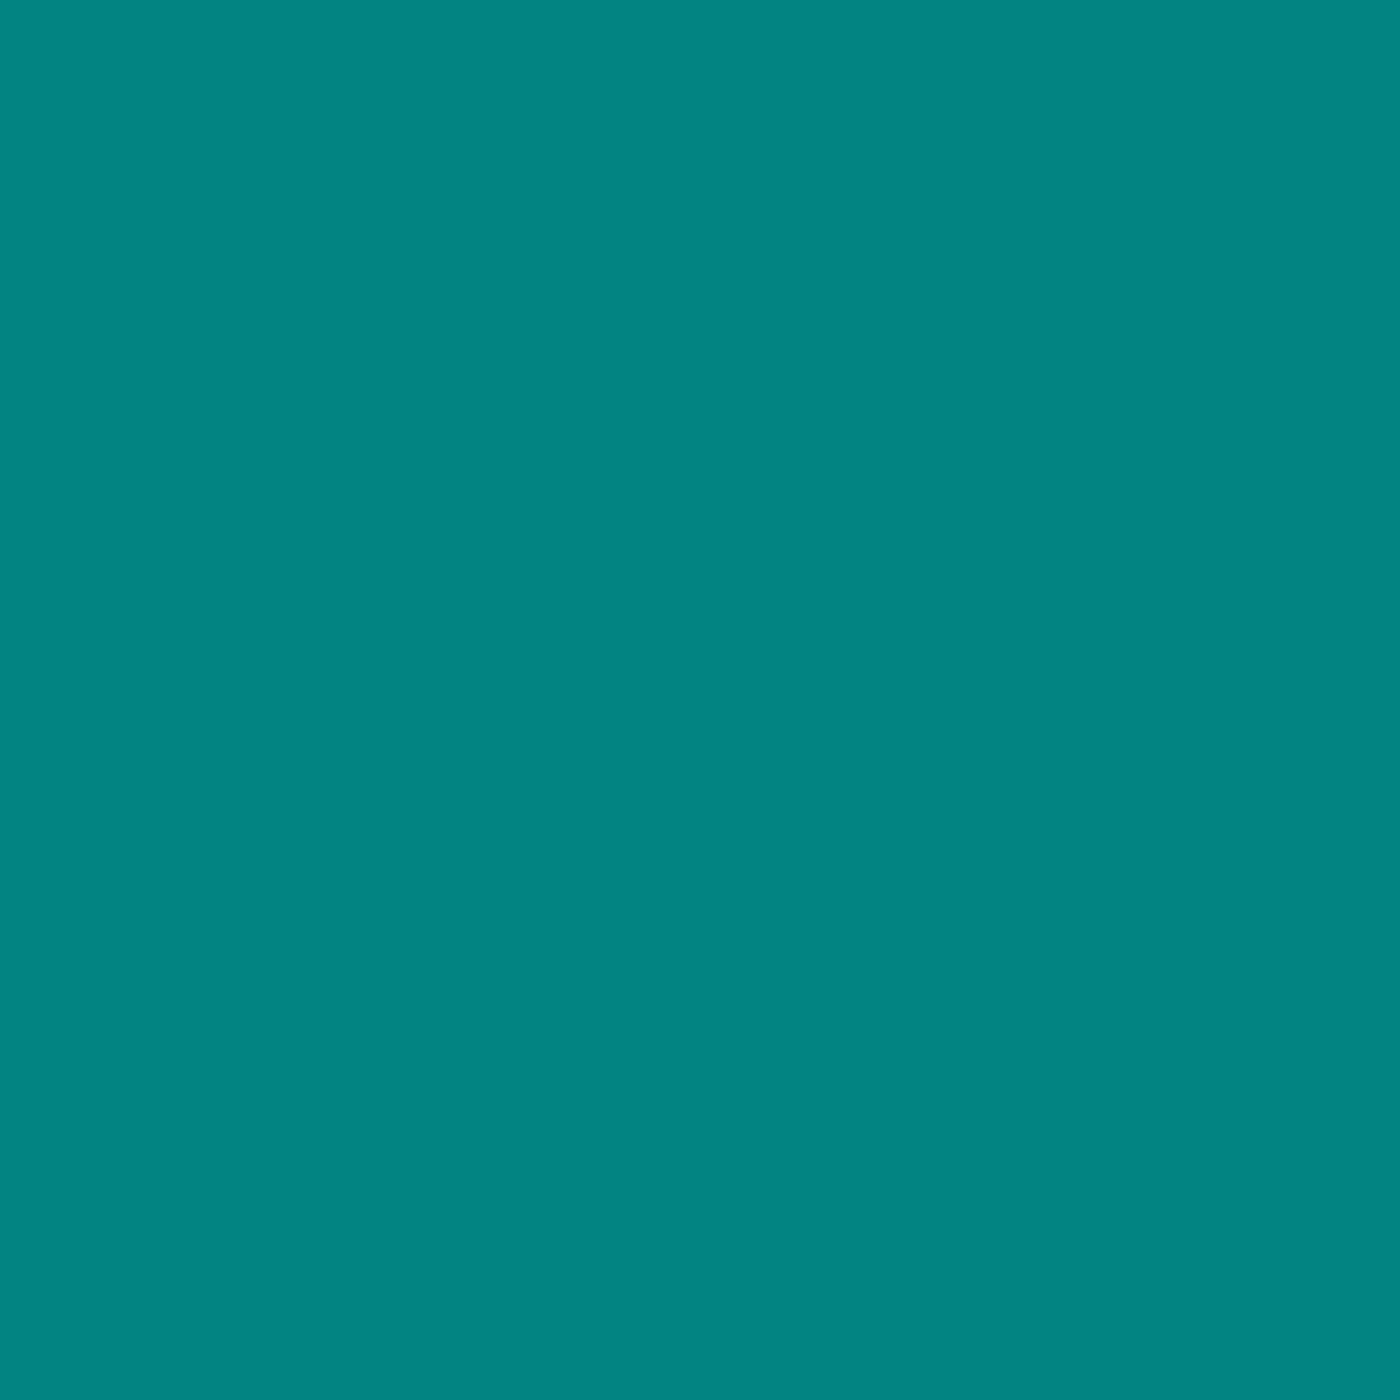 Suit Teal MKS-W21-17